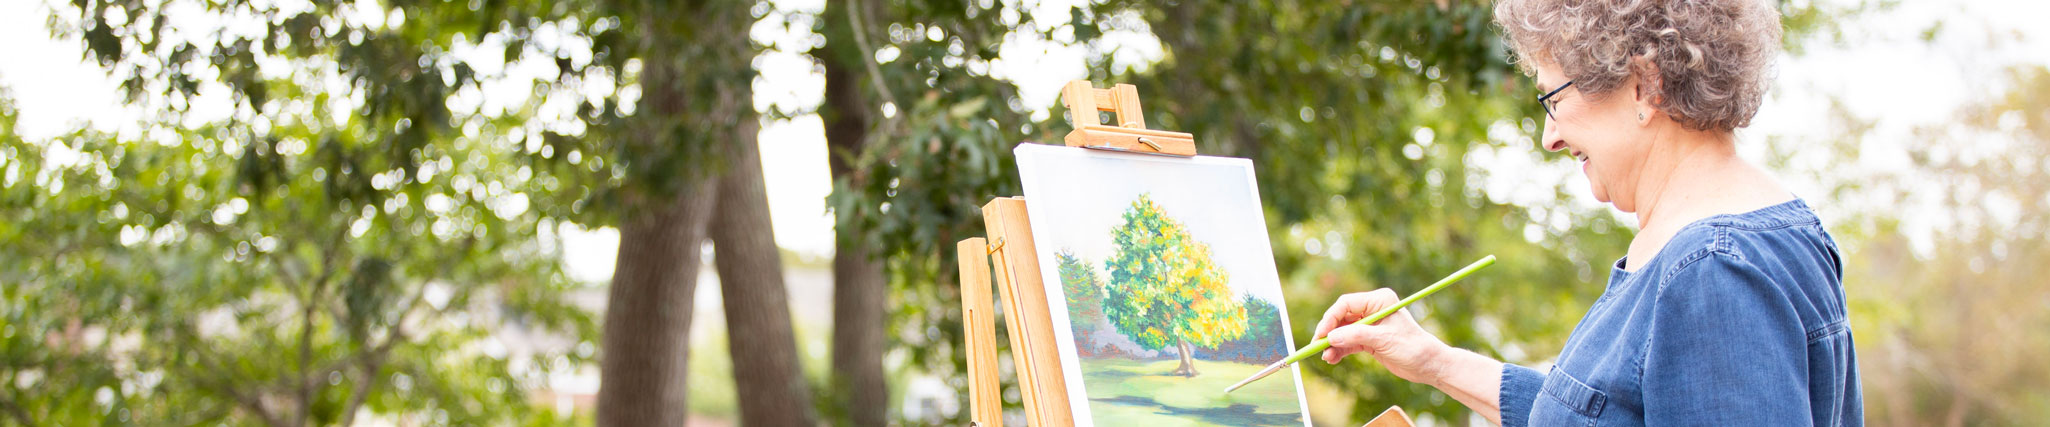 senior lady painting on a canvas outside an independent living community